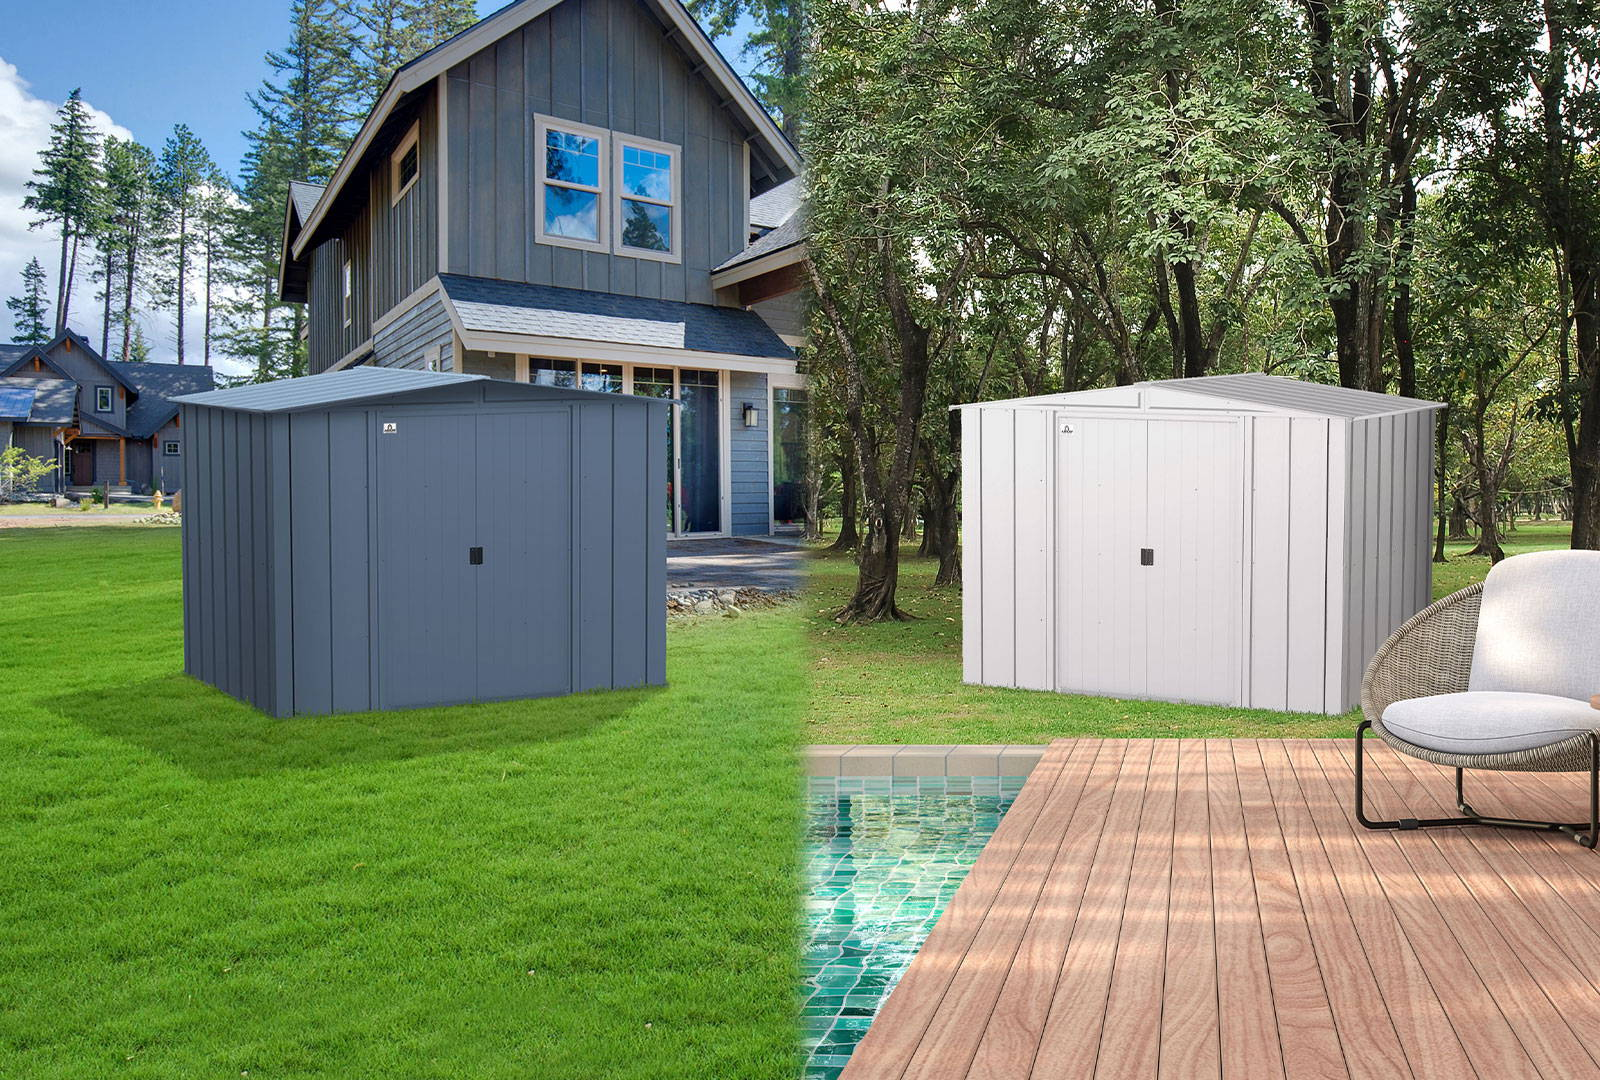 online contests, sweepstakes and giveaways - Win a Classic Series Shed from Arrow!